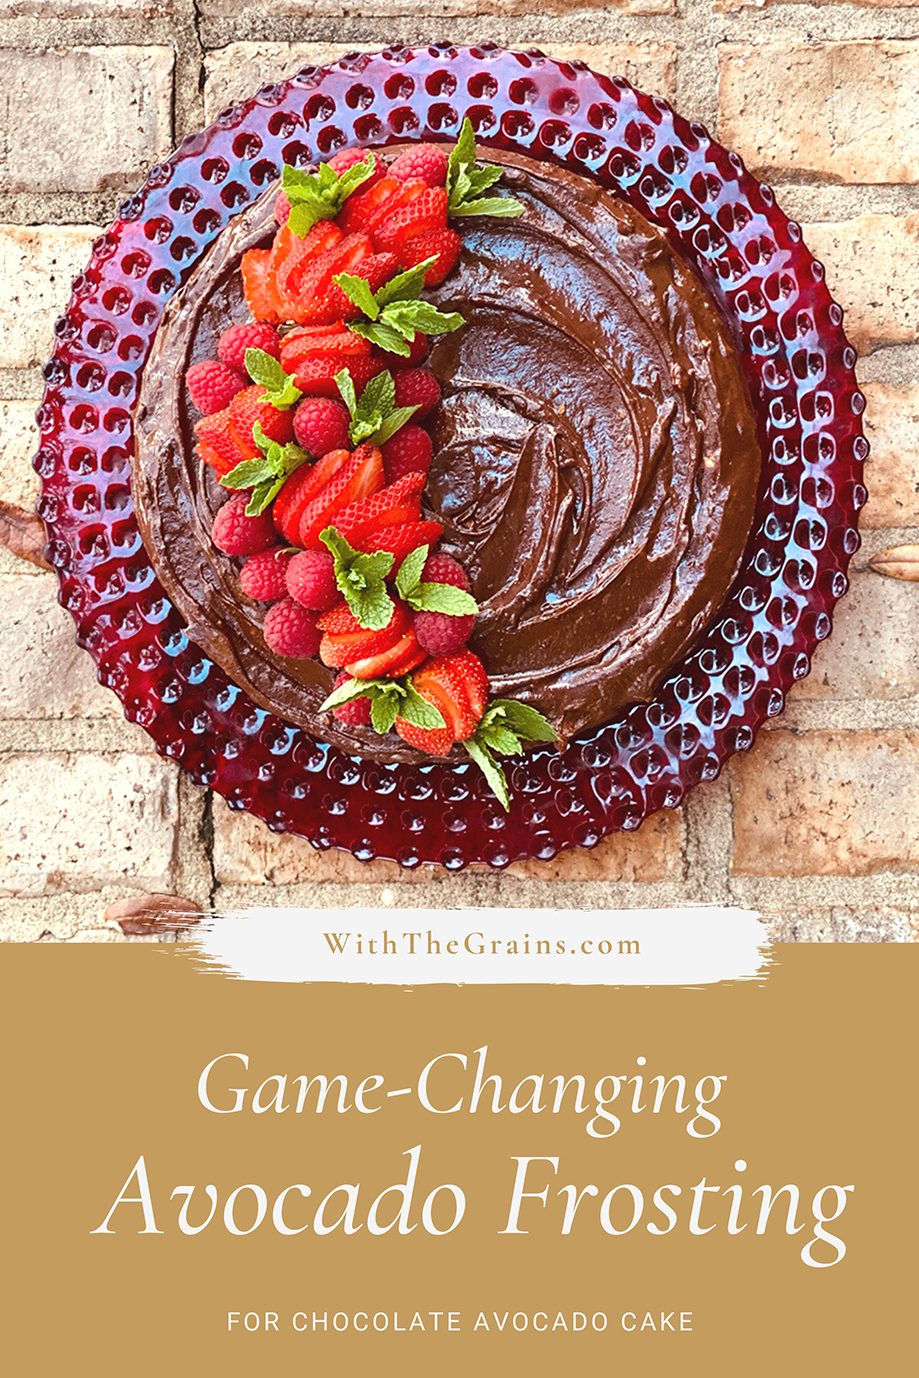 Game-Changing Chocolate Avocado Frosting & Chocolate Avocado Cake // www.WithTheGrains.com